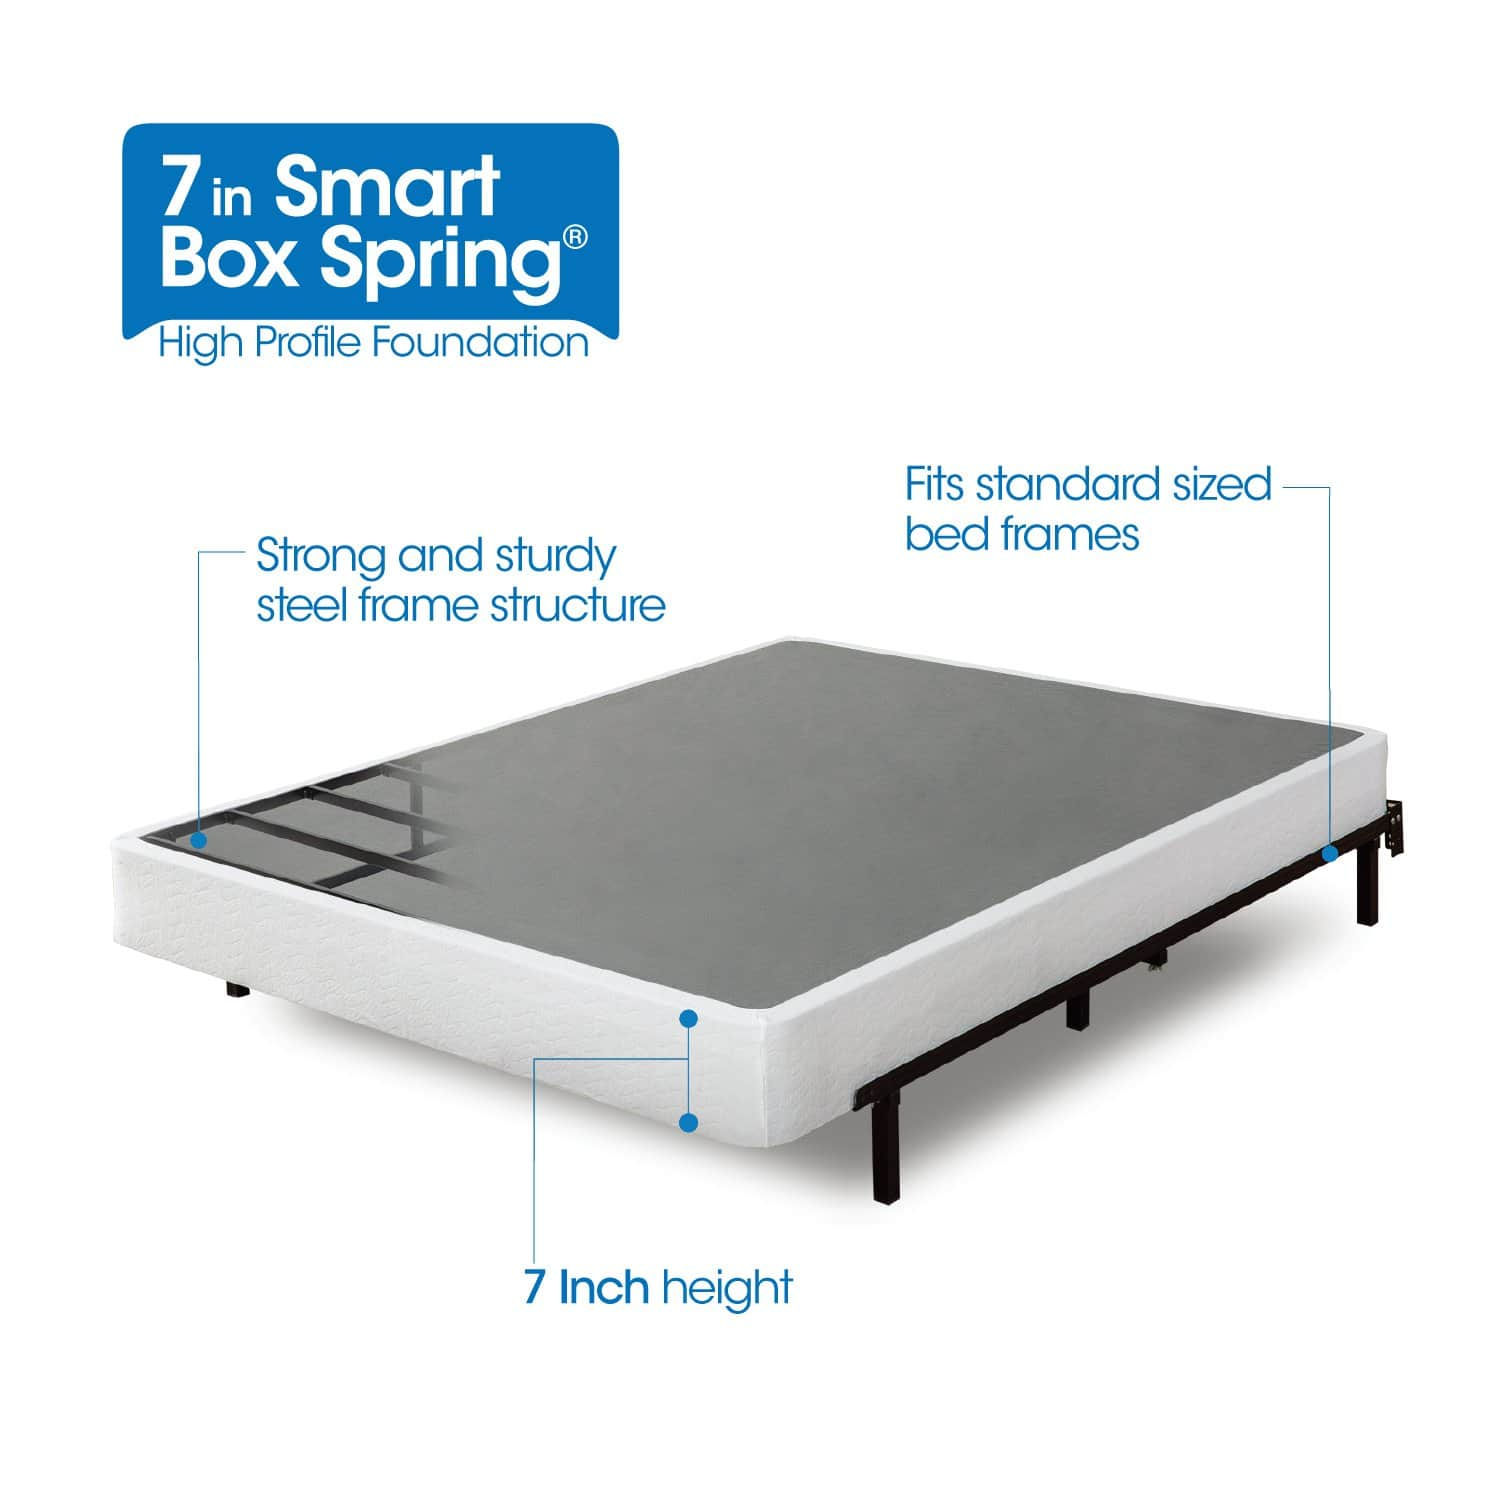 Zinus Armita 7 Inch Smart Box Spring / Mattress Foundation / Strong Steel Structure / Easy assembly Required, King $95.99